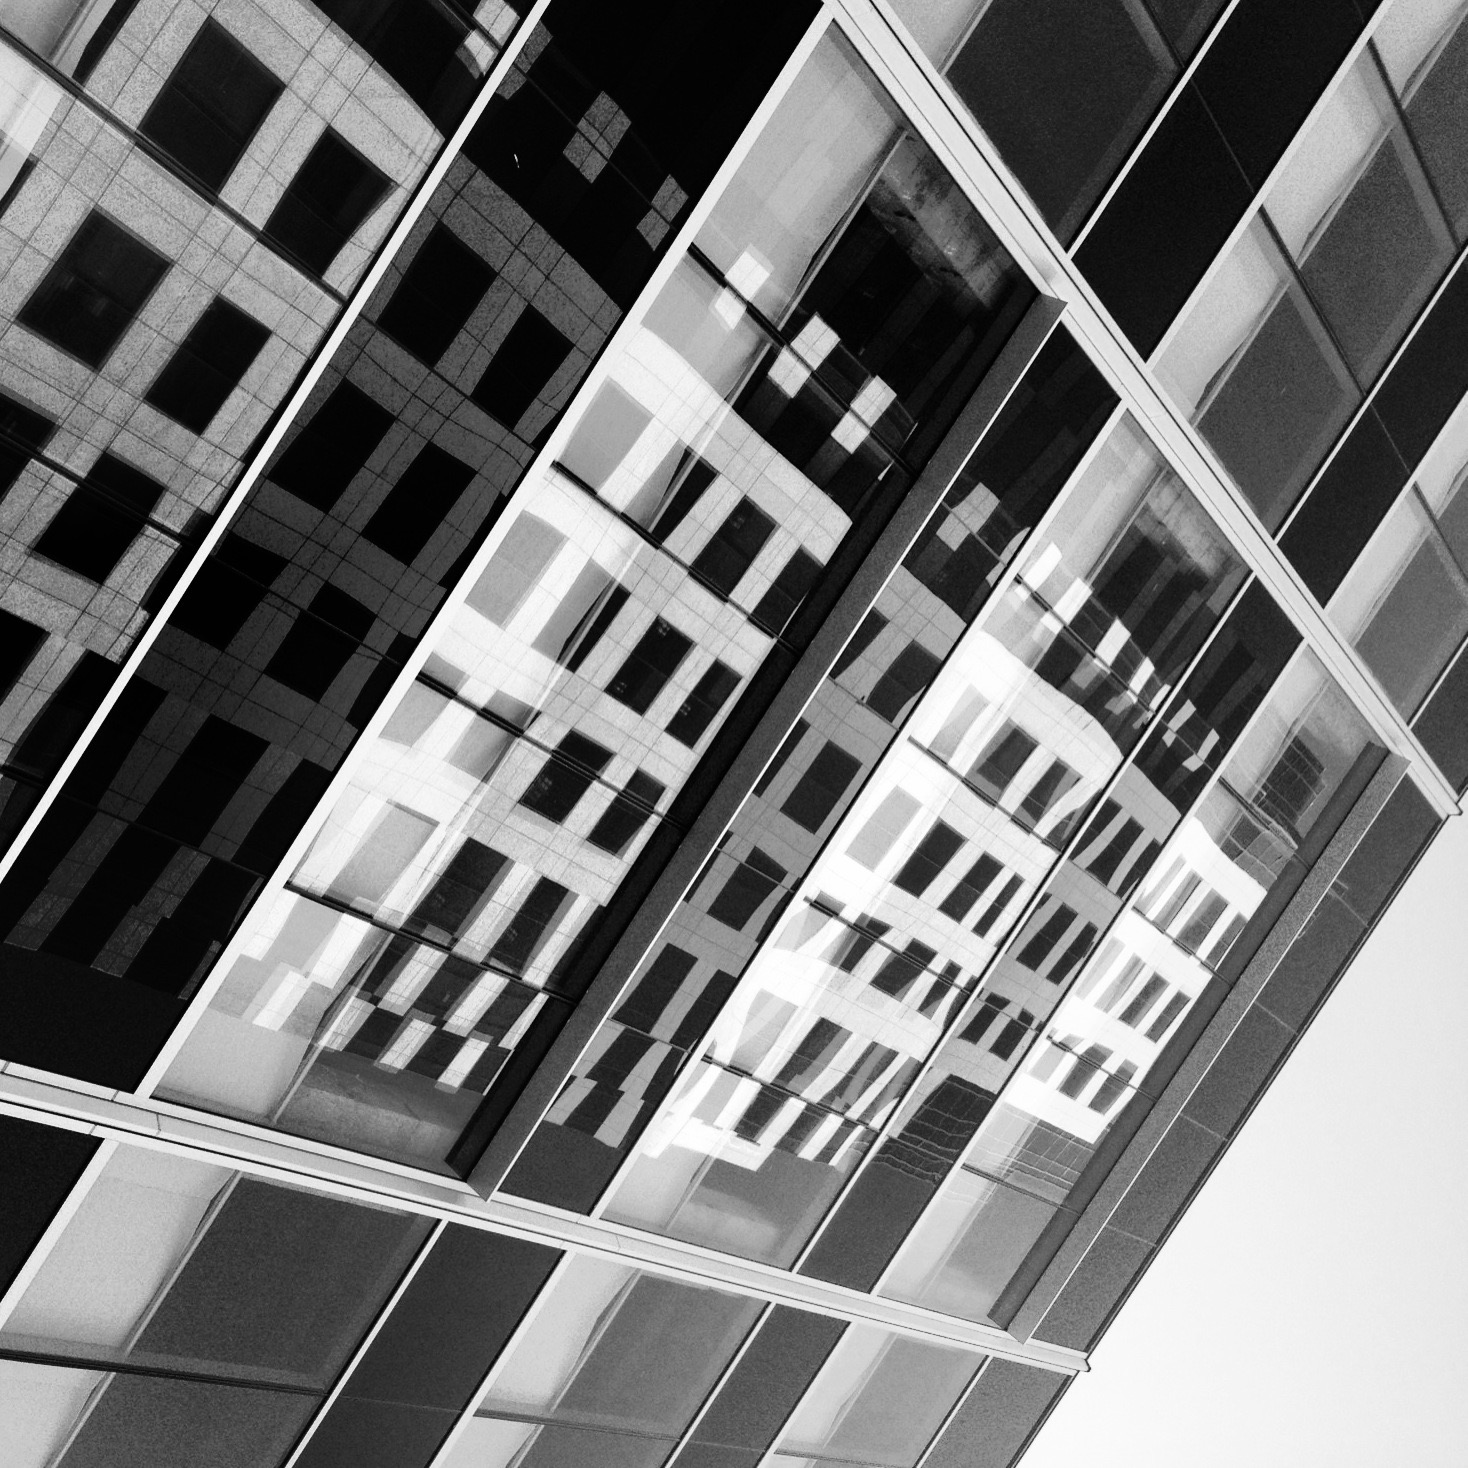 Reflections of Downtown LA